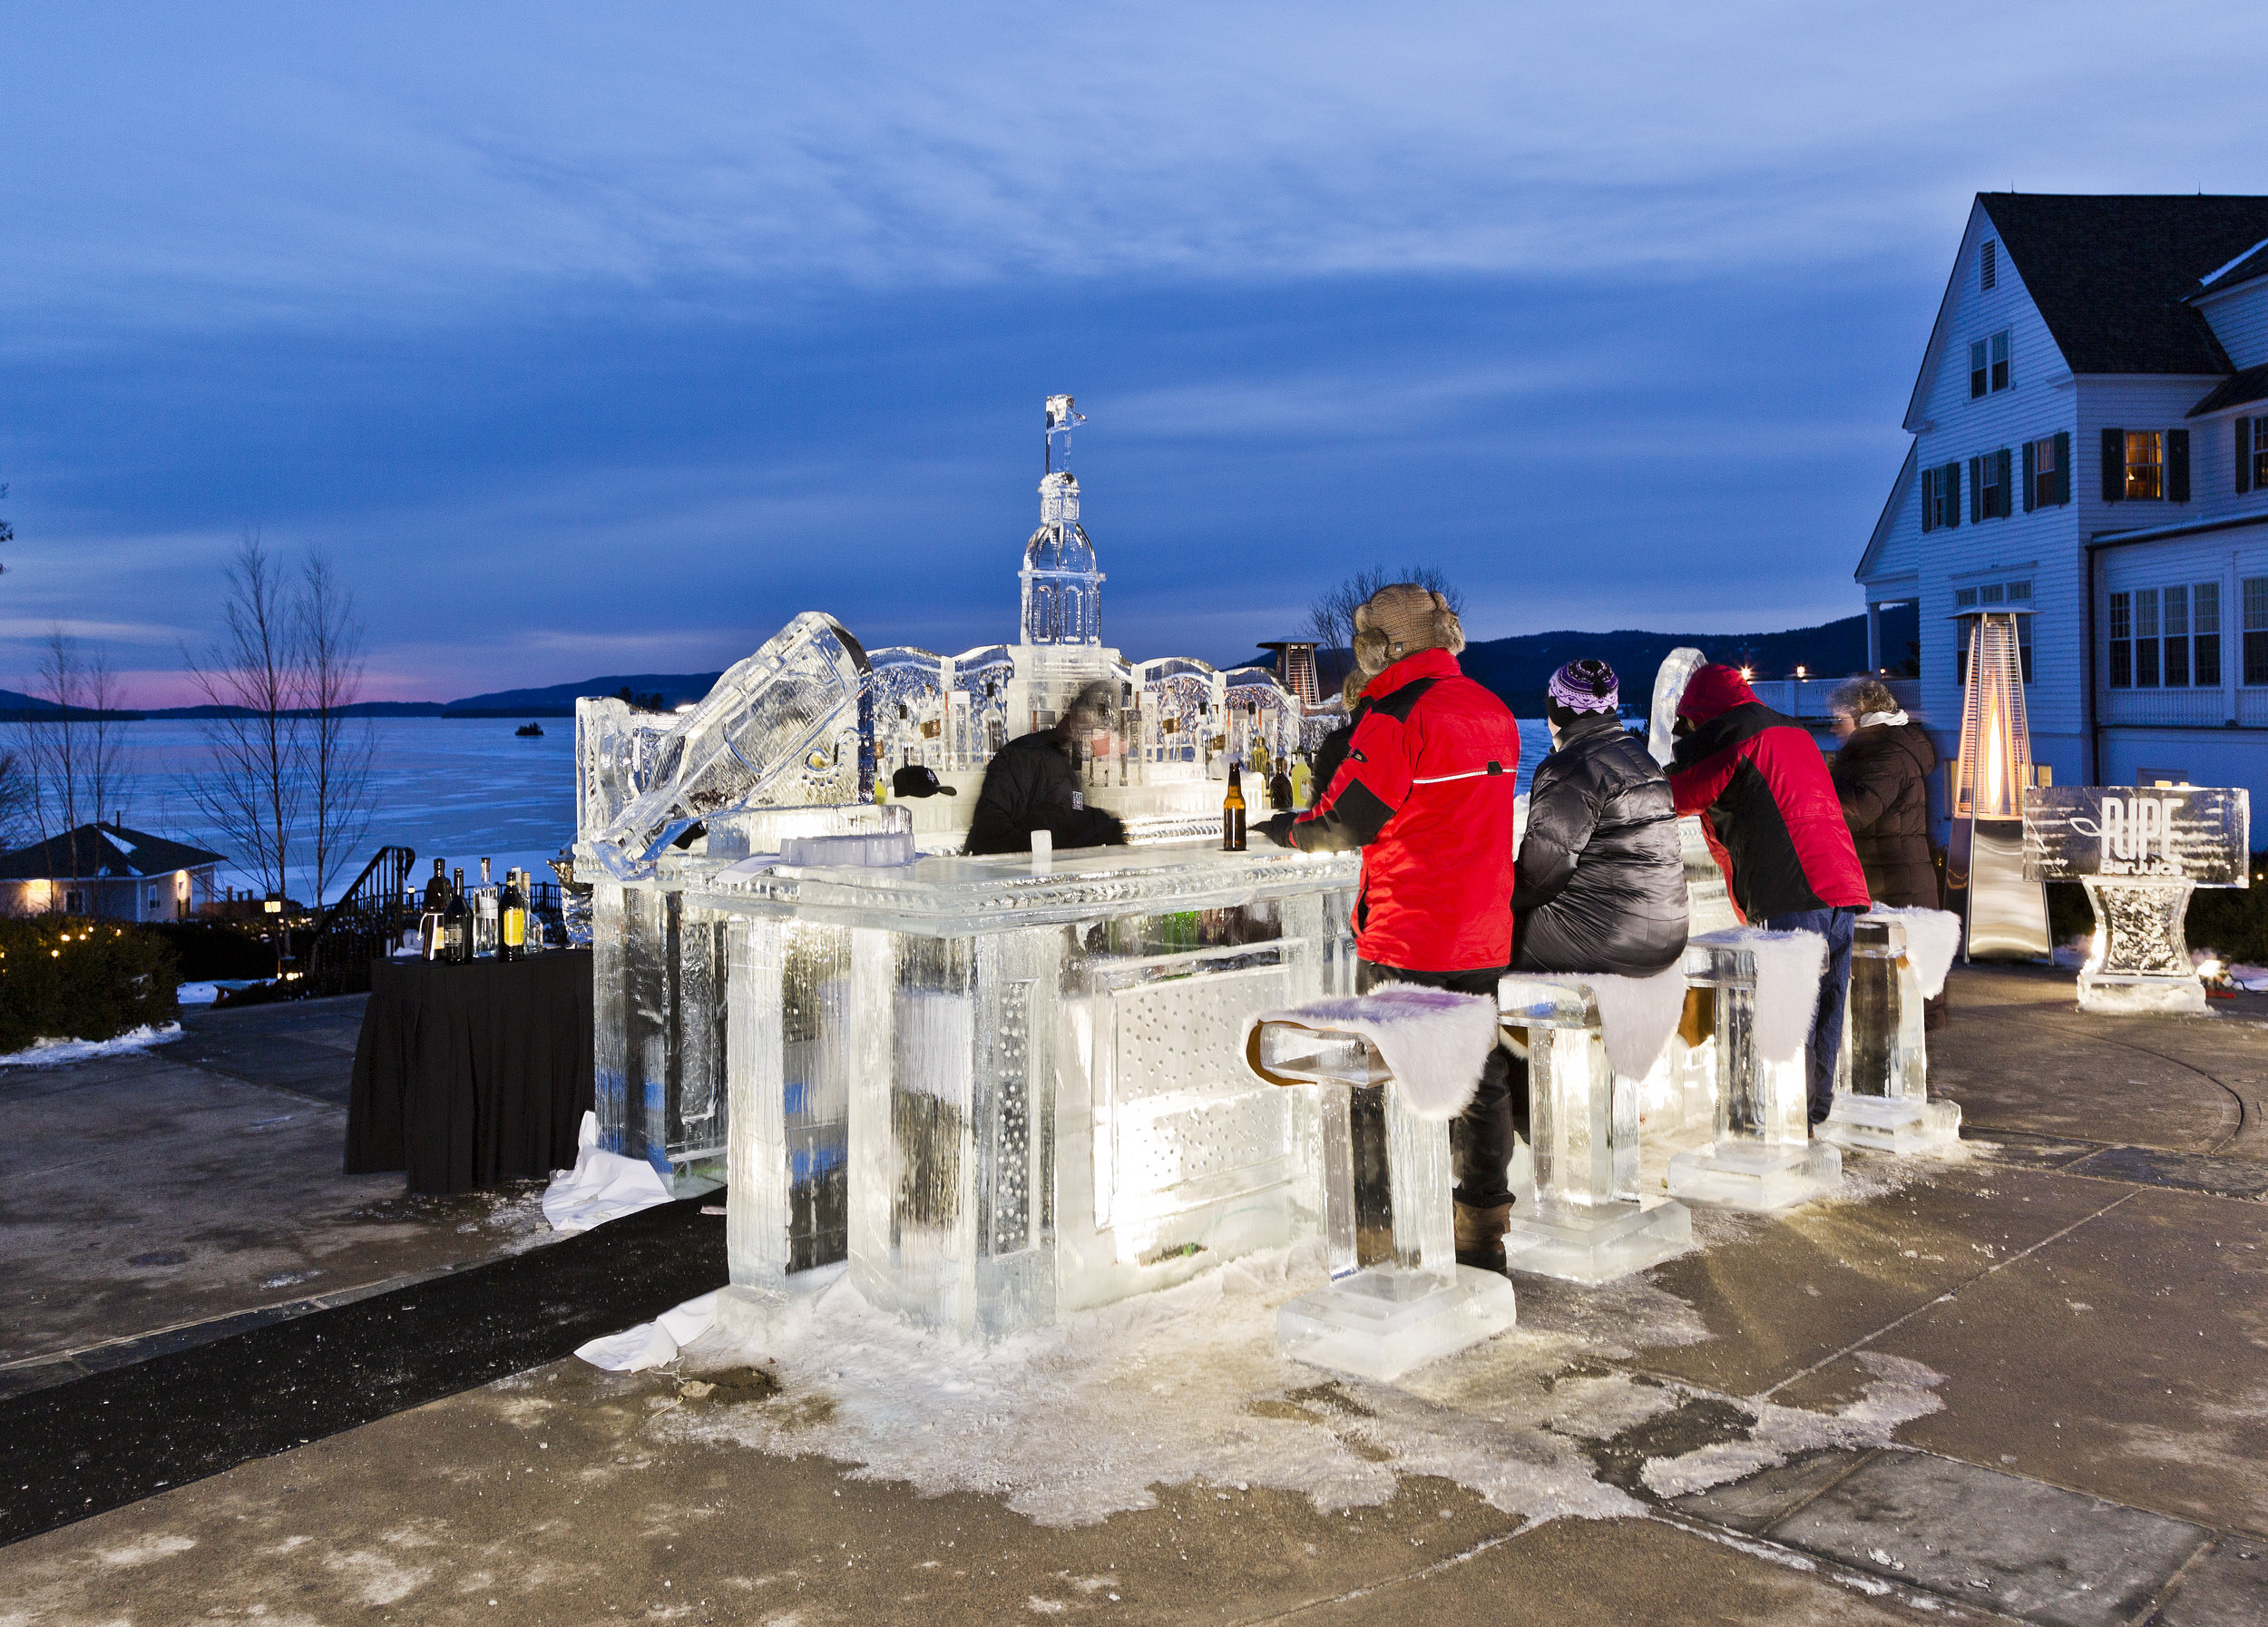 Sagamore-Ice-Bar-7.jpg